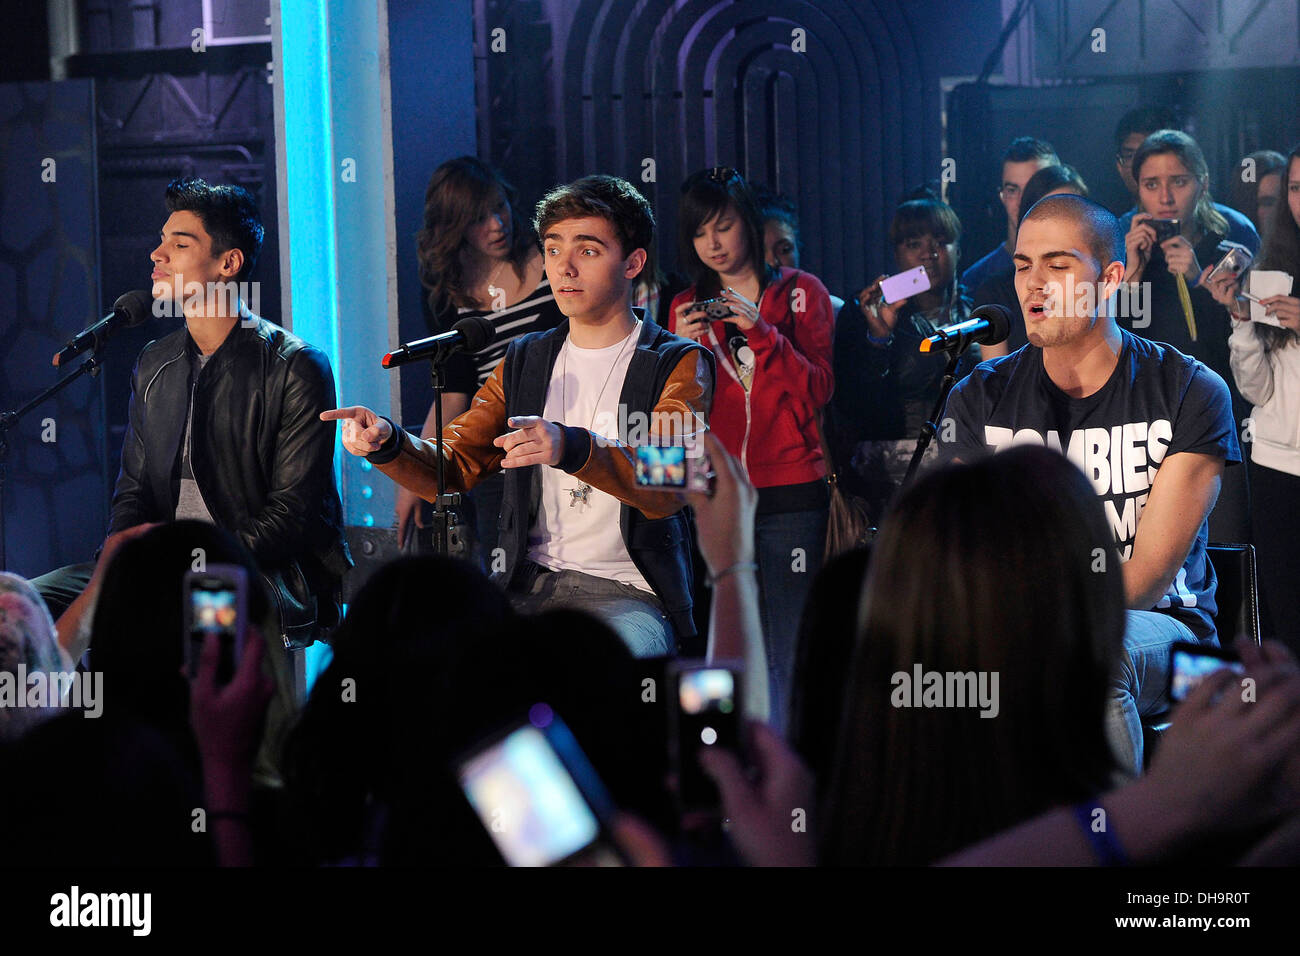 Siva Kaneswaran Nathan Sykes and Max George 'The Wanted' visits